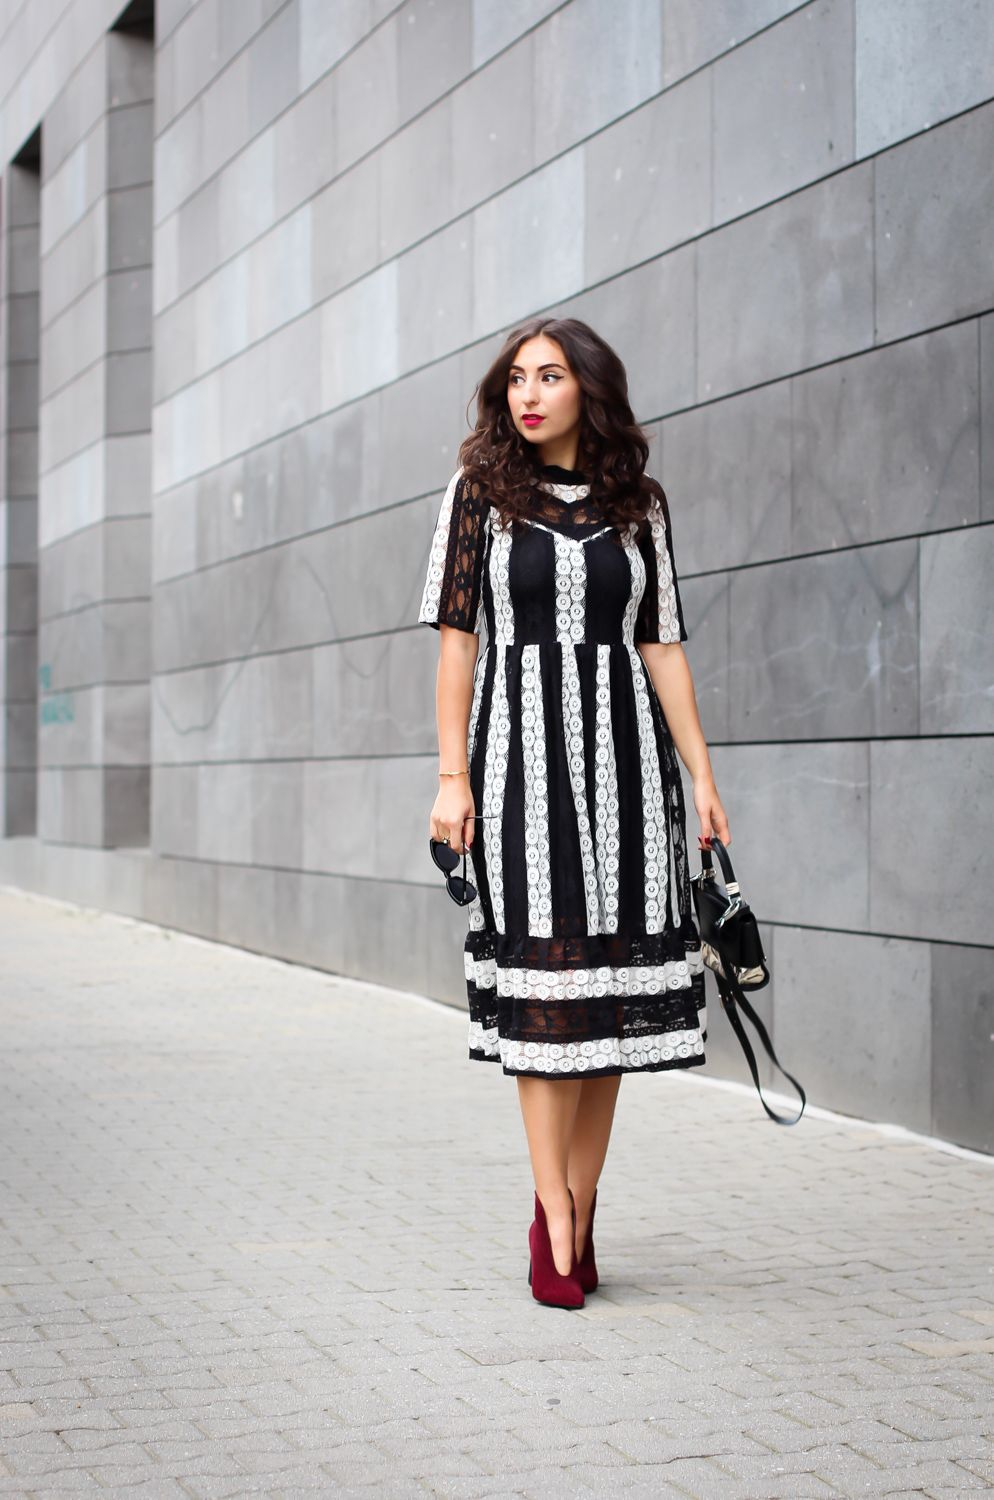 Berlin style summer dresses